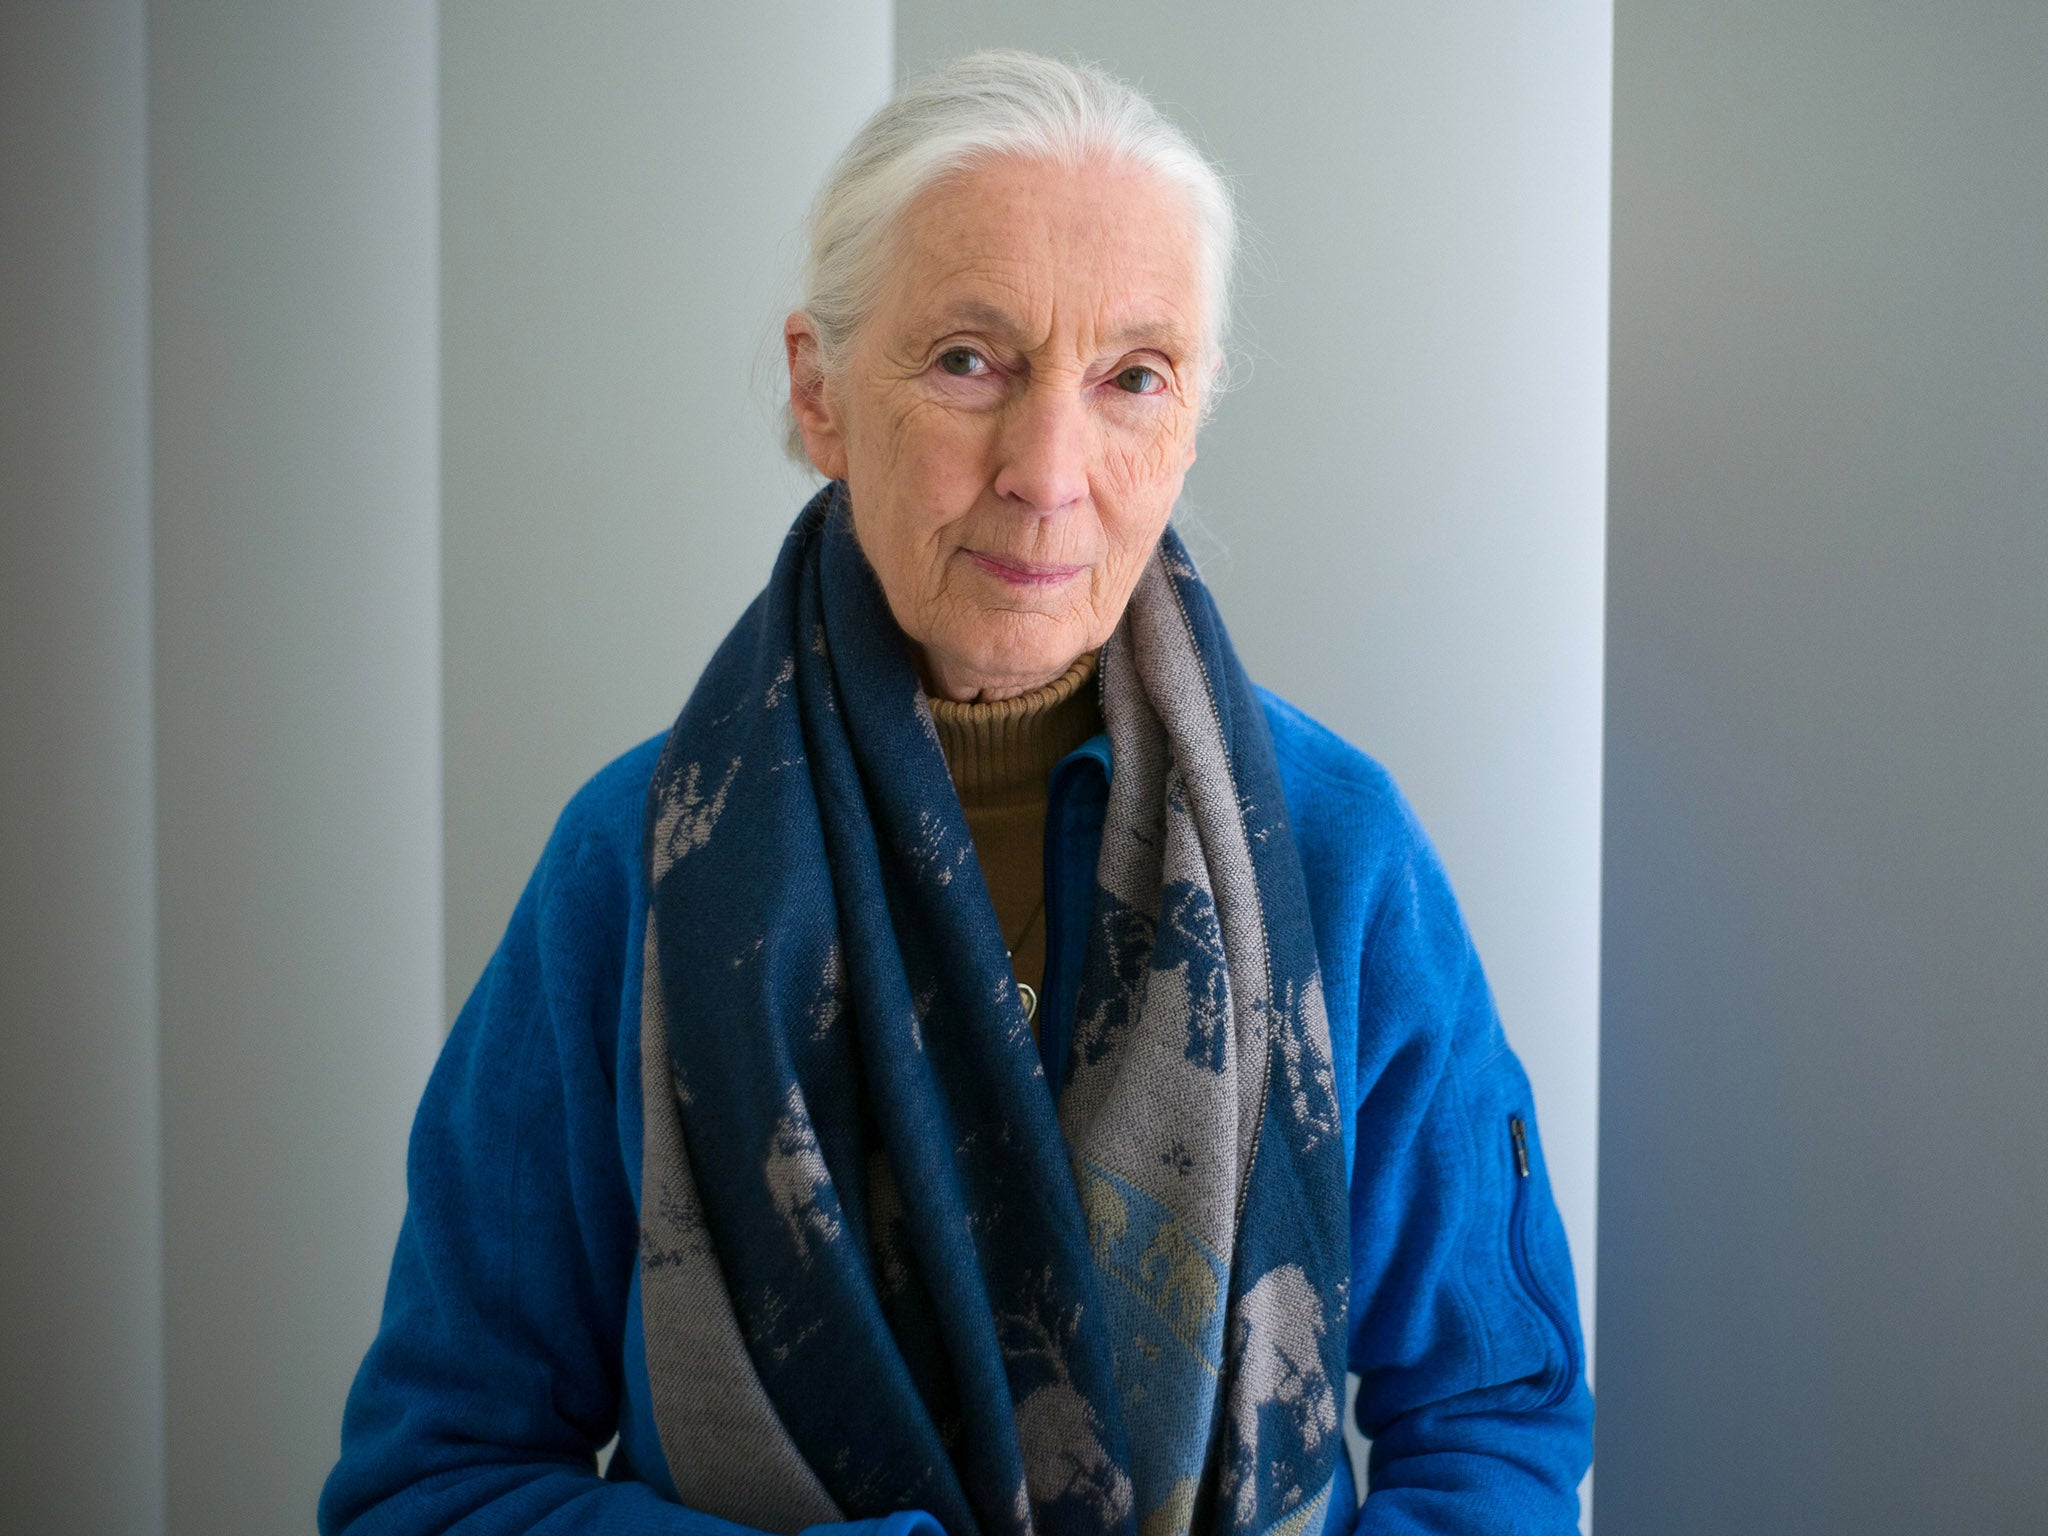 Jane Goodall says 'humanity is finished' if we fail to learn from coronavirus